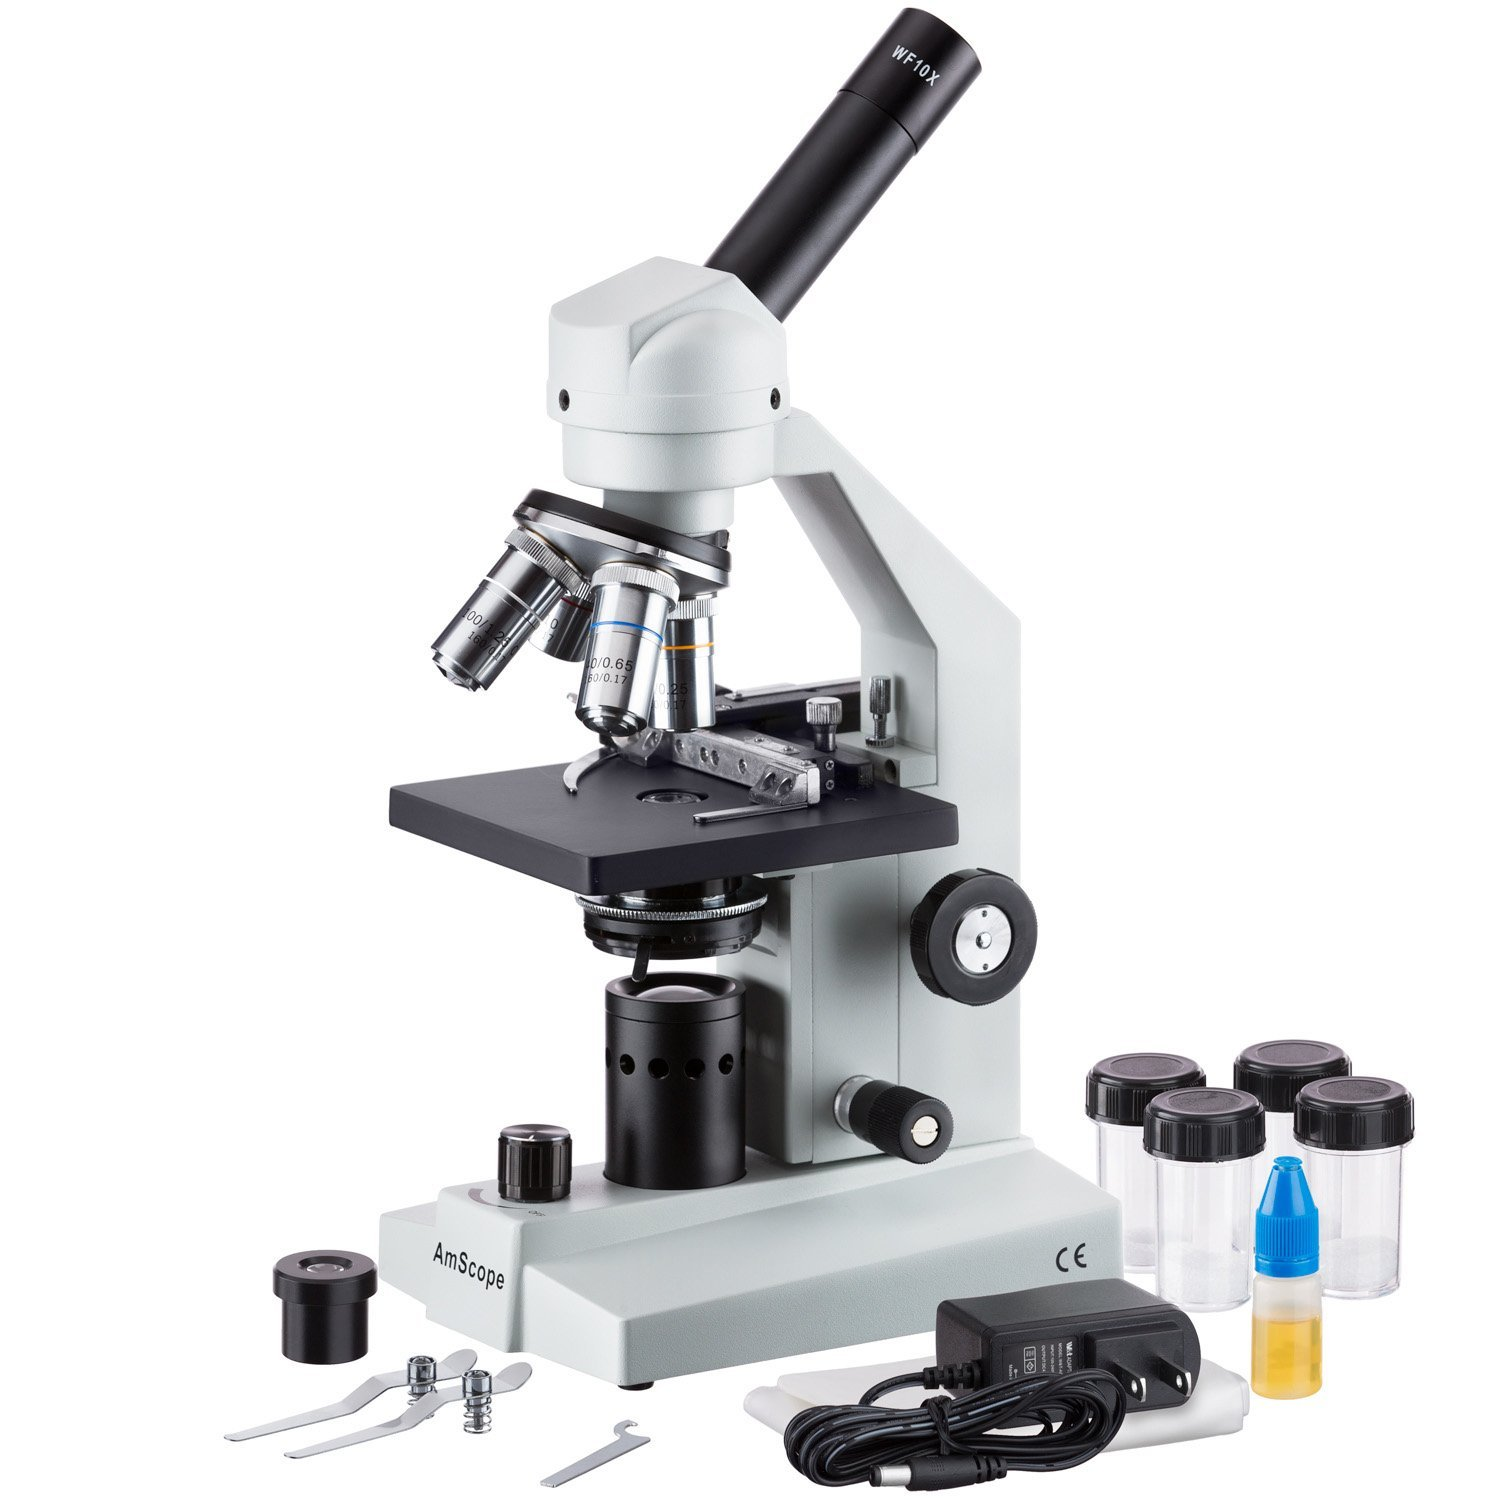 AmScope M500B-MS-LED Monocular Compound Microscope